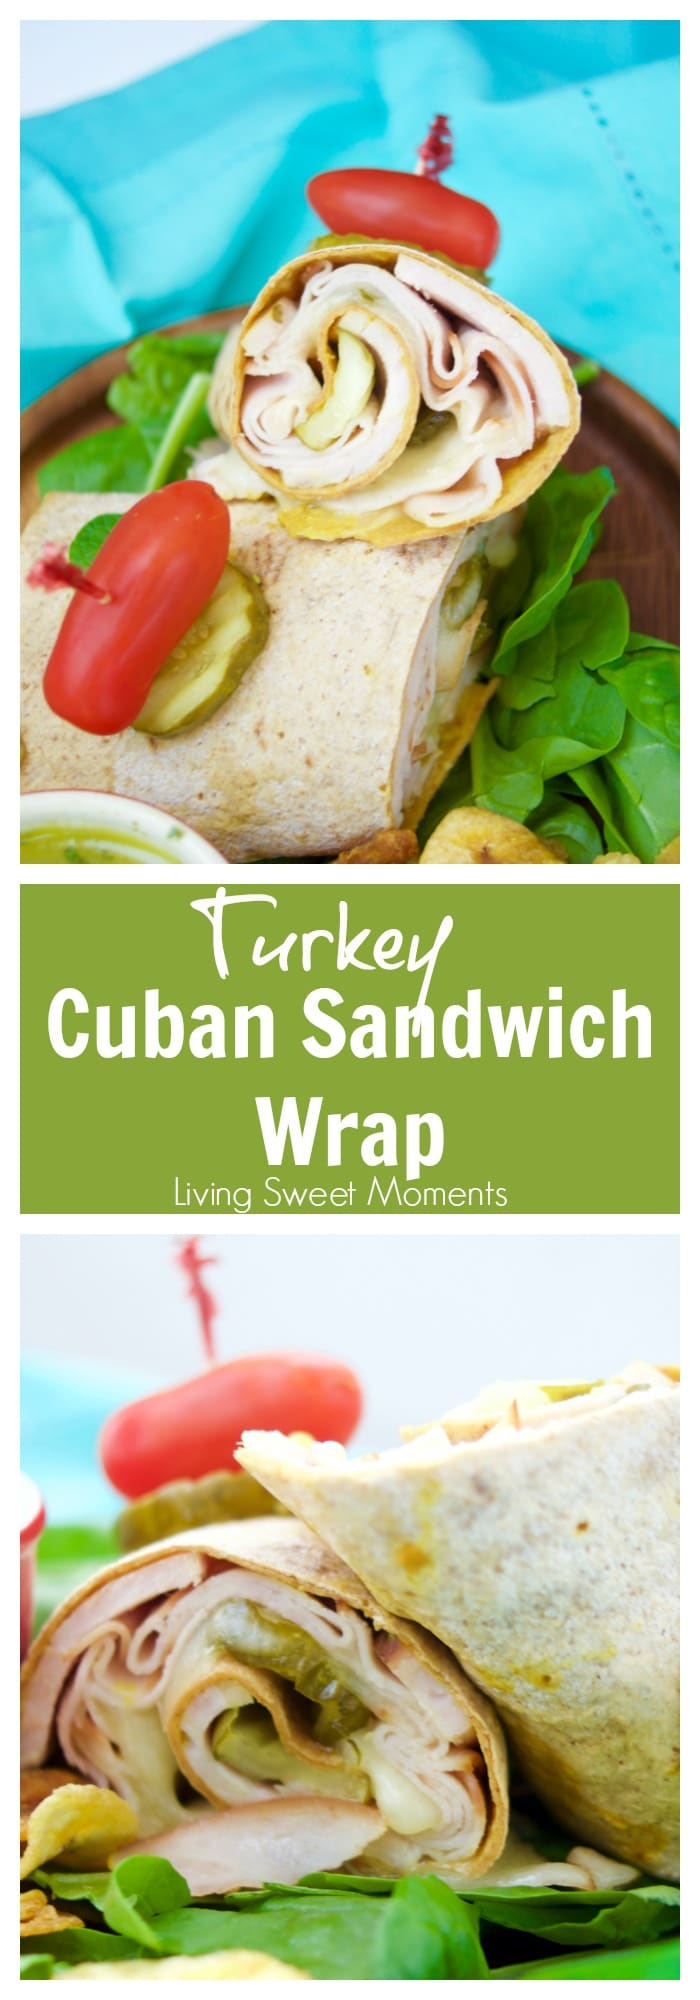 This delicious Cuban Sandwich Wrap made with turkey, is ready in 5 minutes or less and is the perfect quick weeknight dinner that is both exotic and tasty!